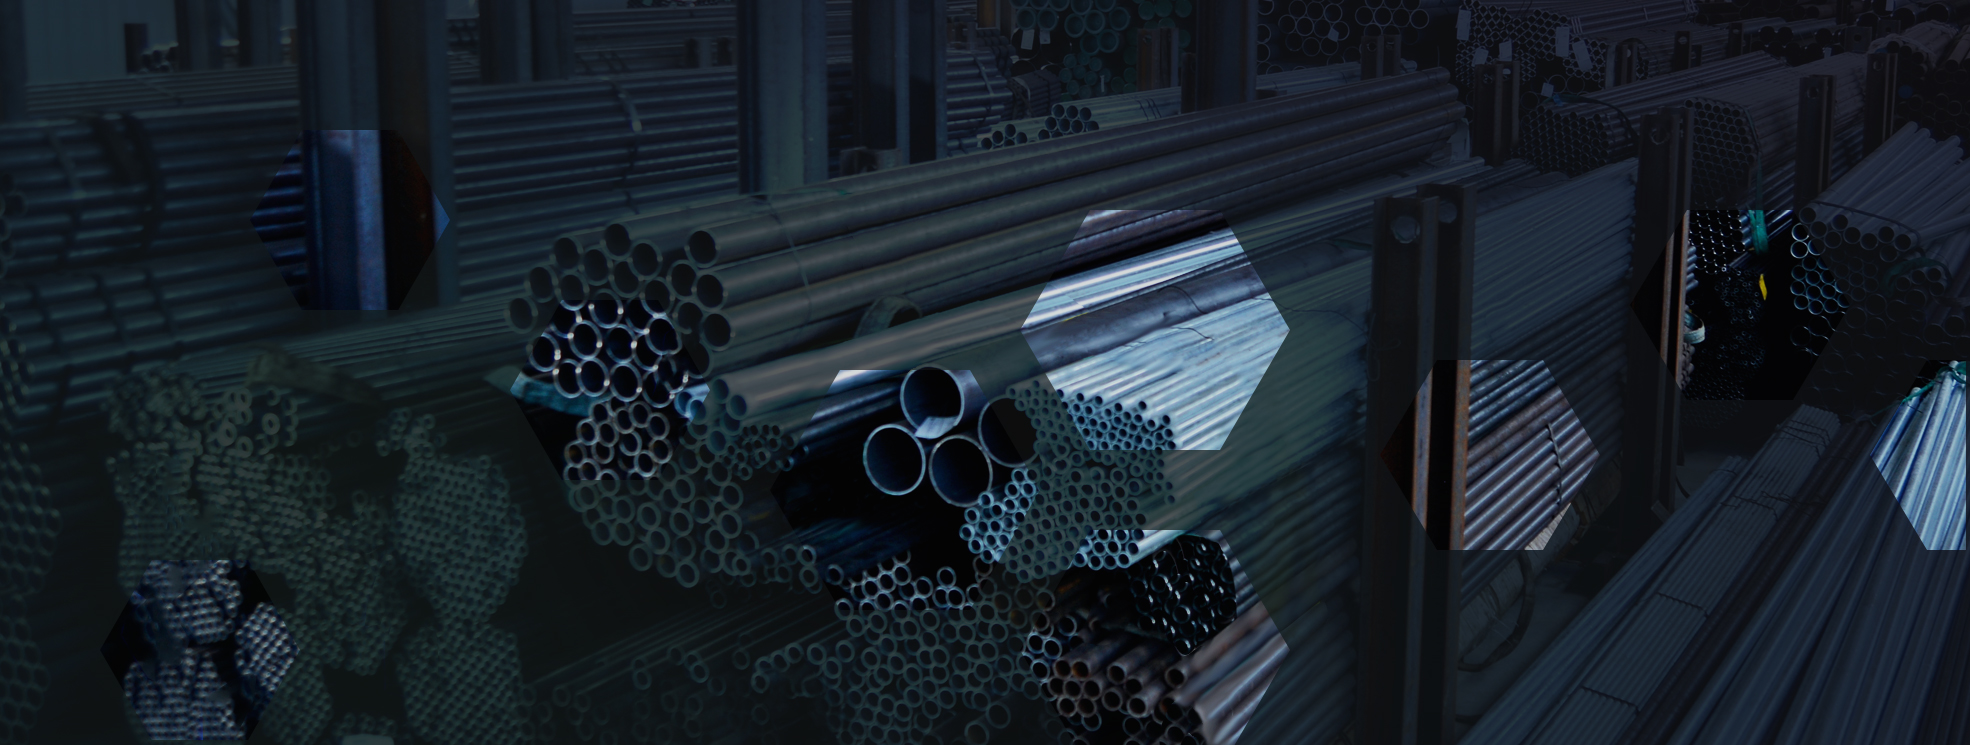 Steel pipes and accessories